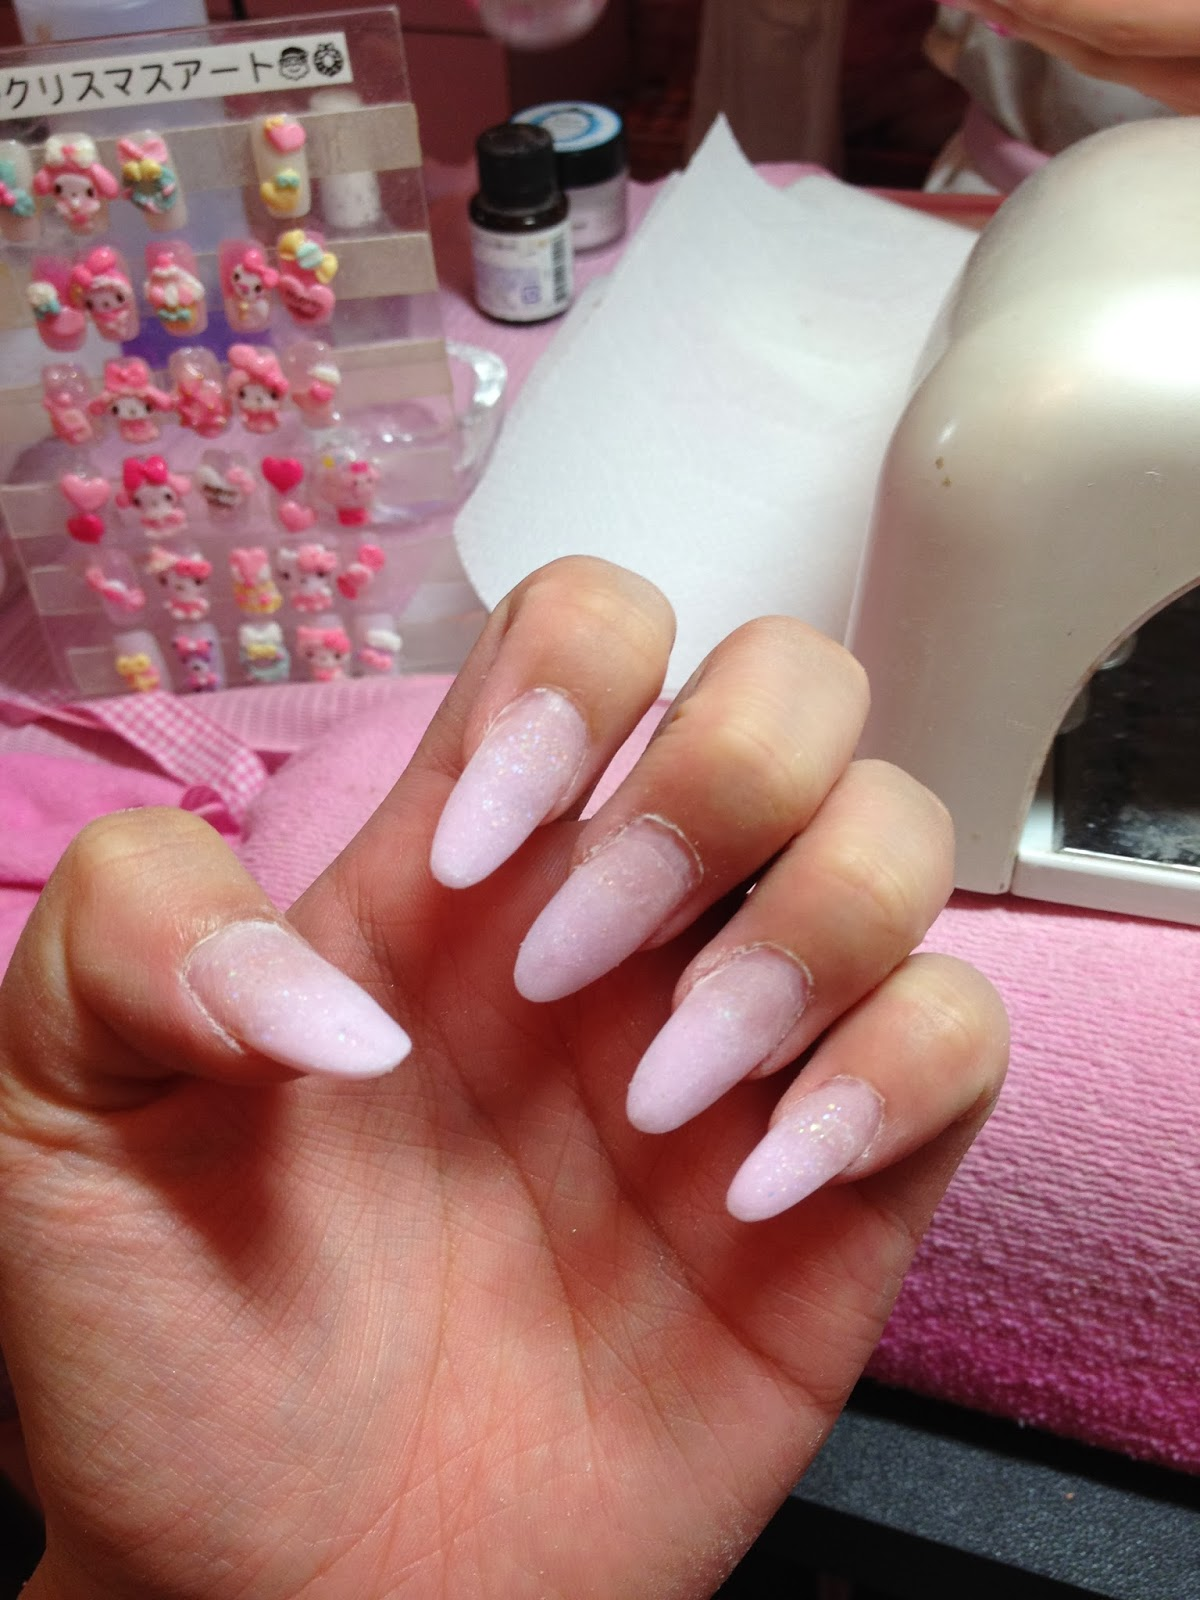 Even If You Have Short Nails They Can Use Putty To Give Nail Extensions These Are Medium Length The More Area Art